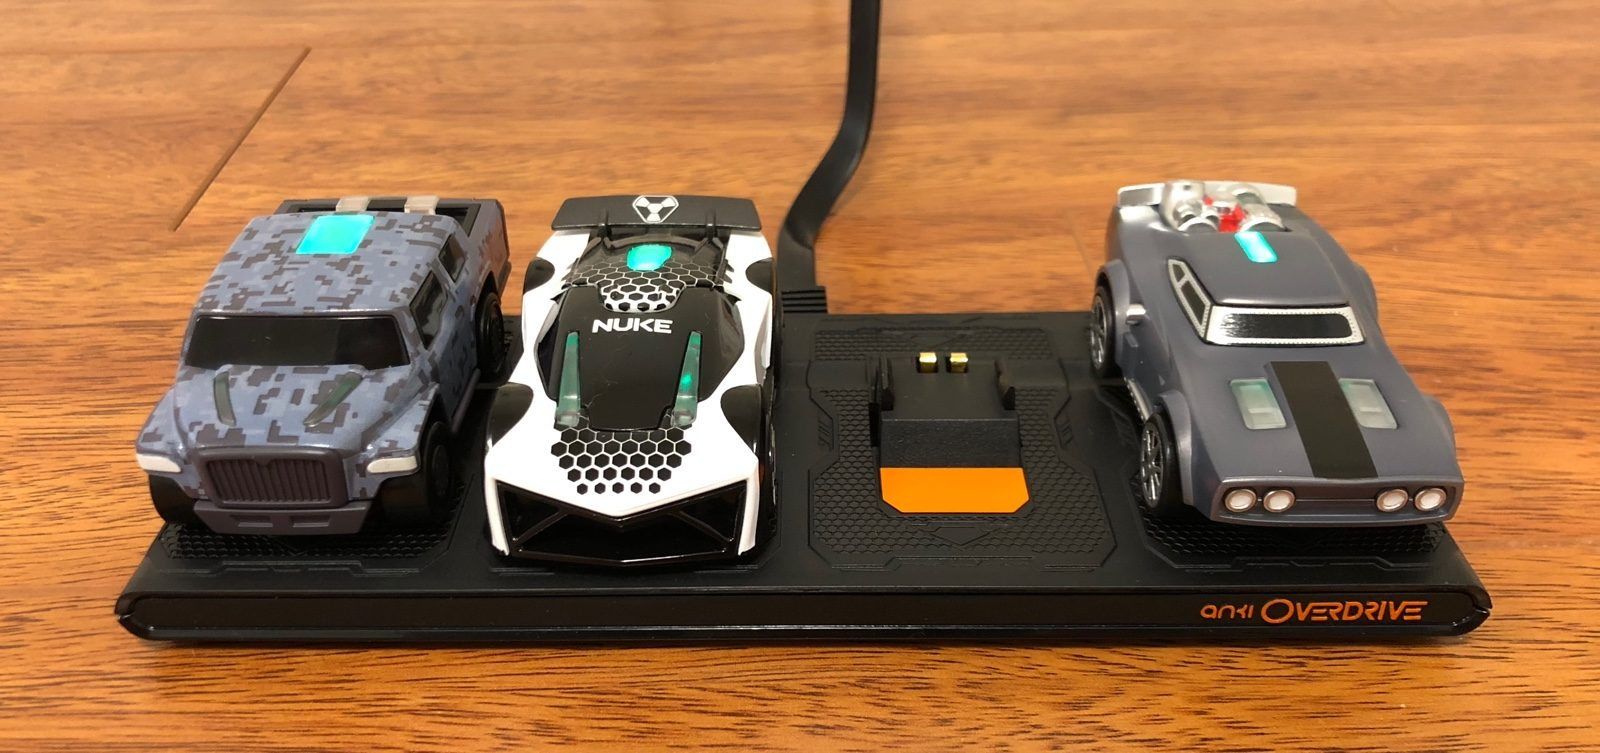 Anki Overdrive: Fast & Furious Edition Kit Review